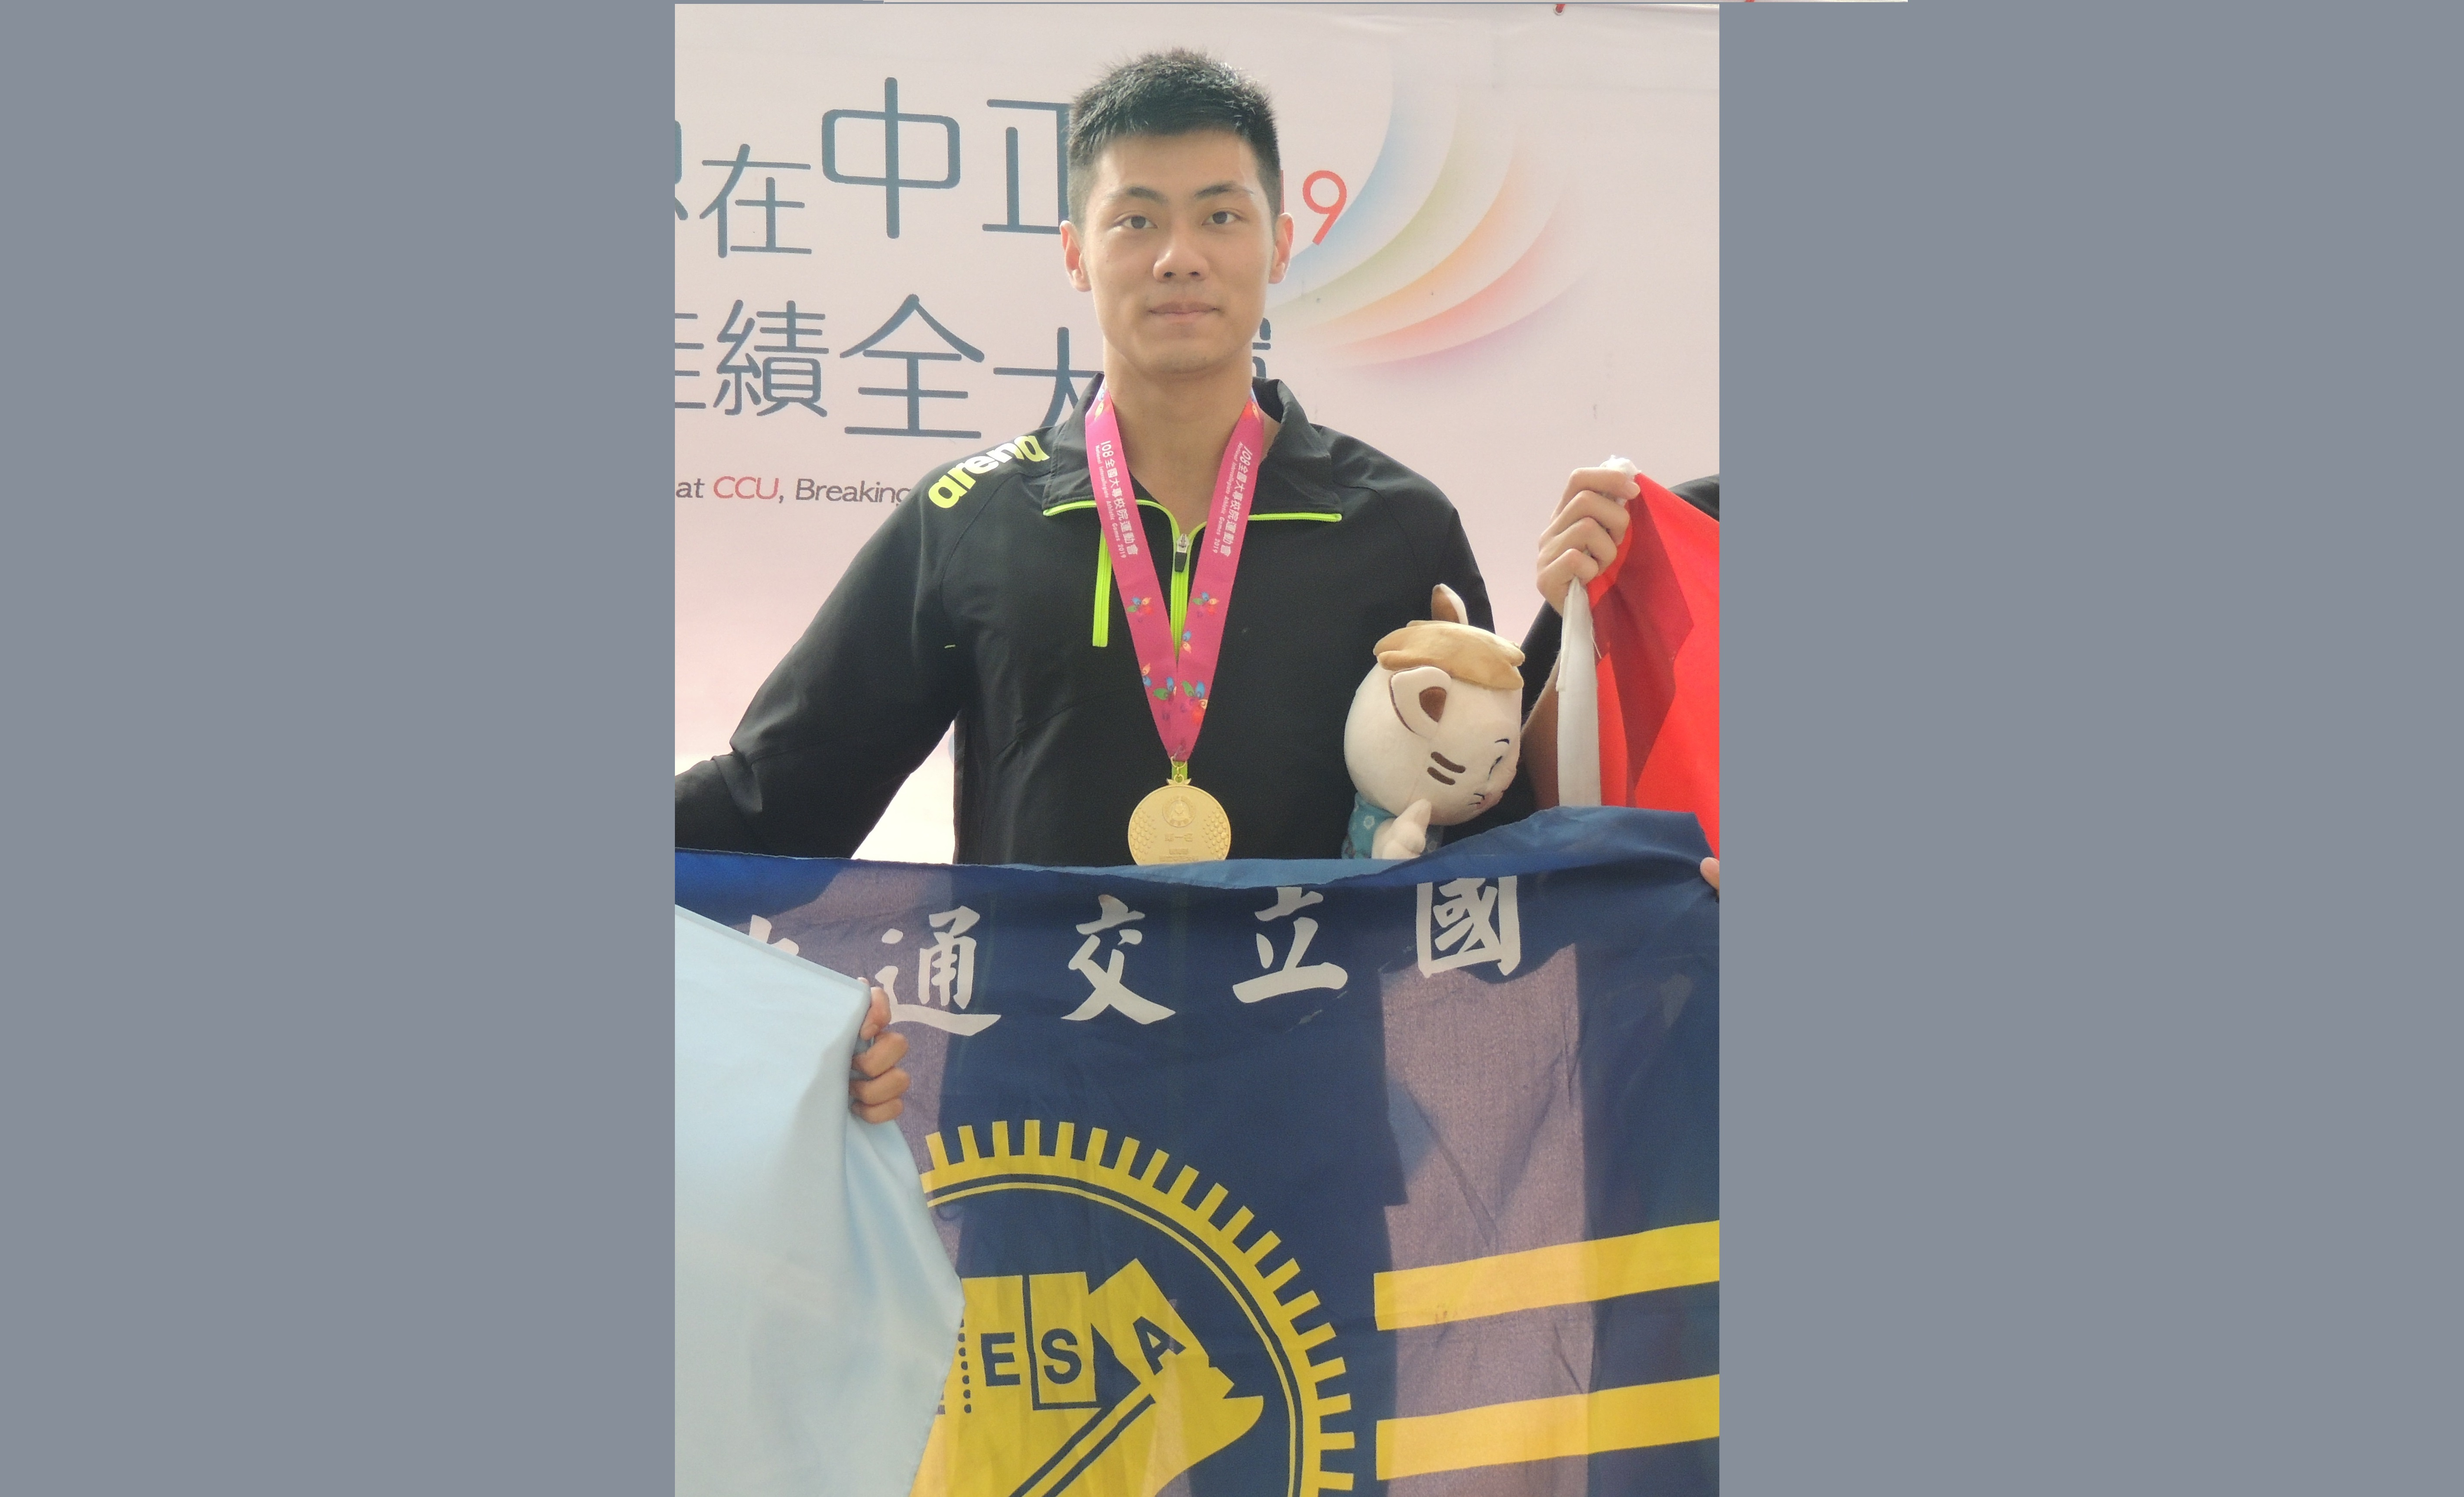 Double Gold medalist Bo-Yao Yang - Swimming